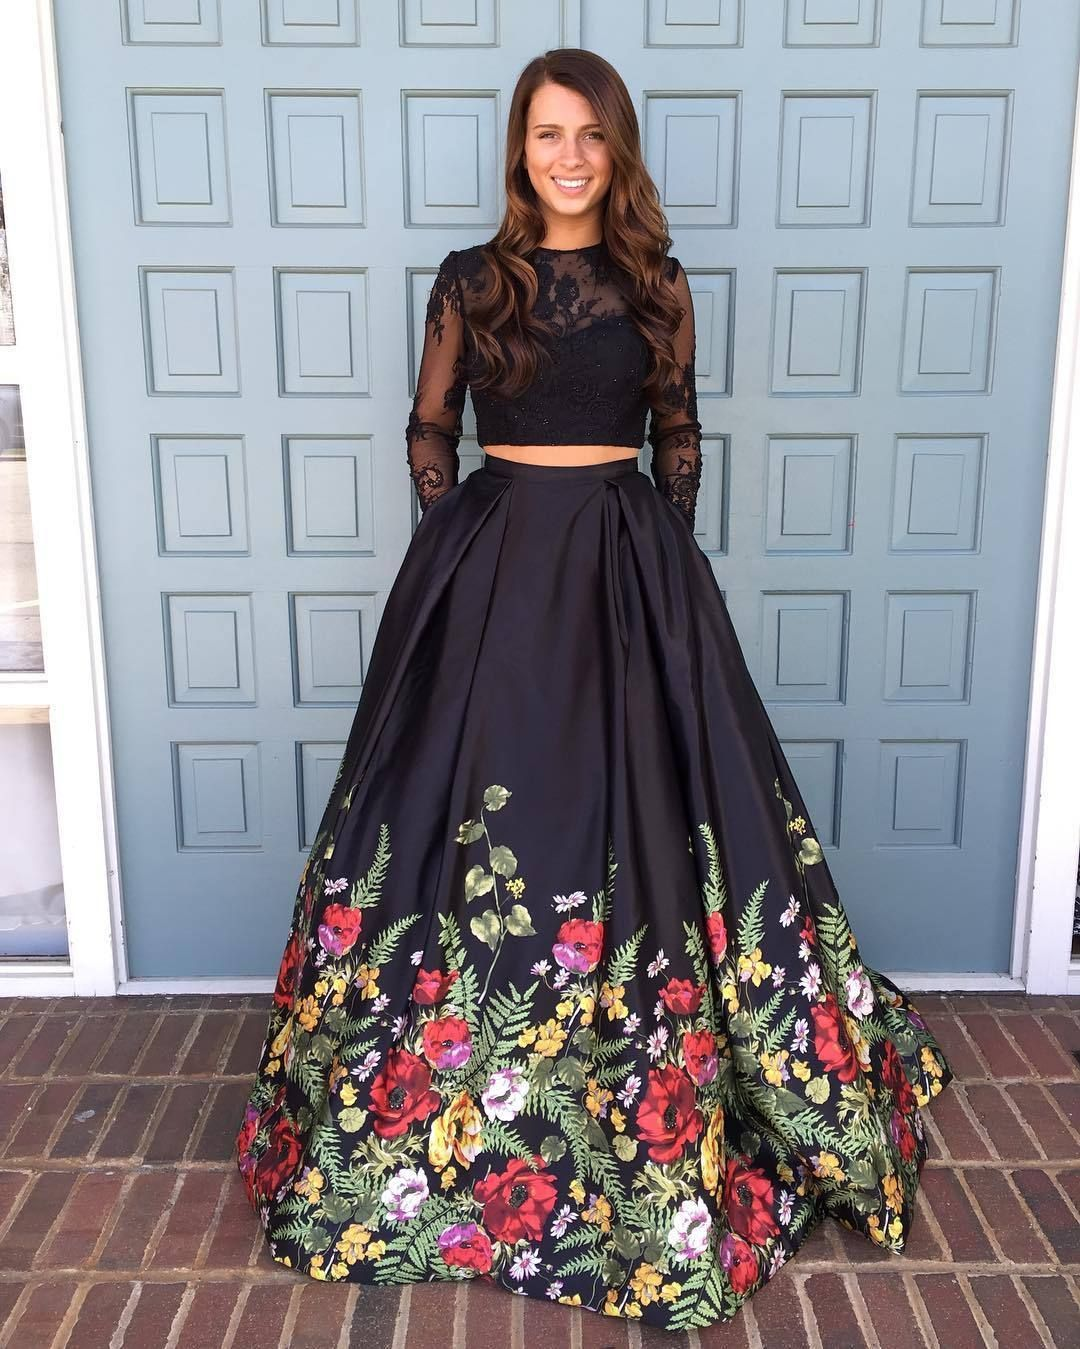 Two Piece Prom Dresses Black Floral Long Evening Dress Long Sleeves Forma Black Long Sleeve Prom Dress Prom Dresses Long With Sleeves Prom Dresses With Sleeves [ 1349 x 1080 Pixel ]